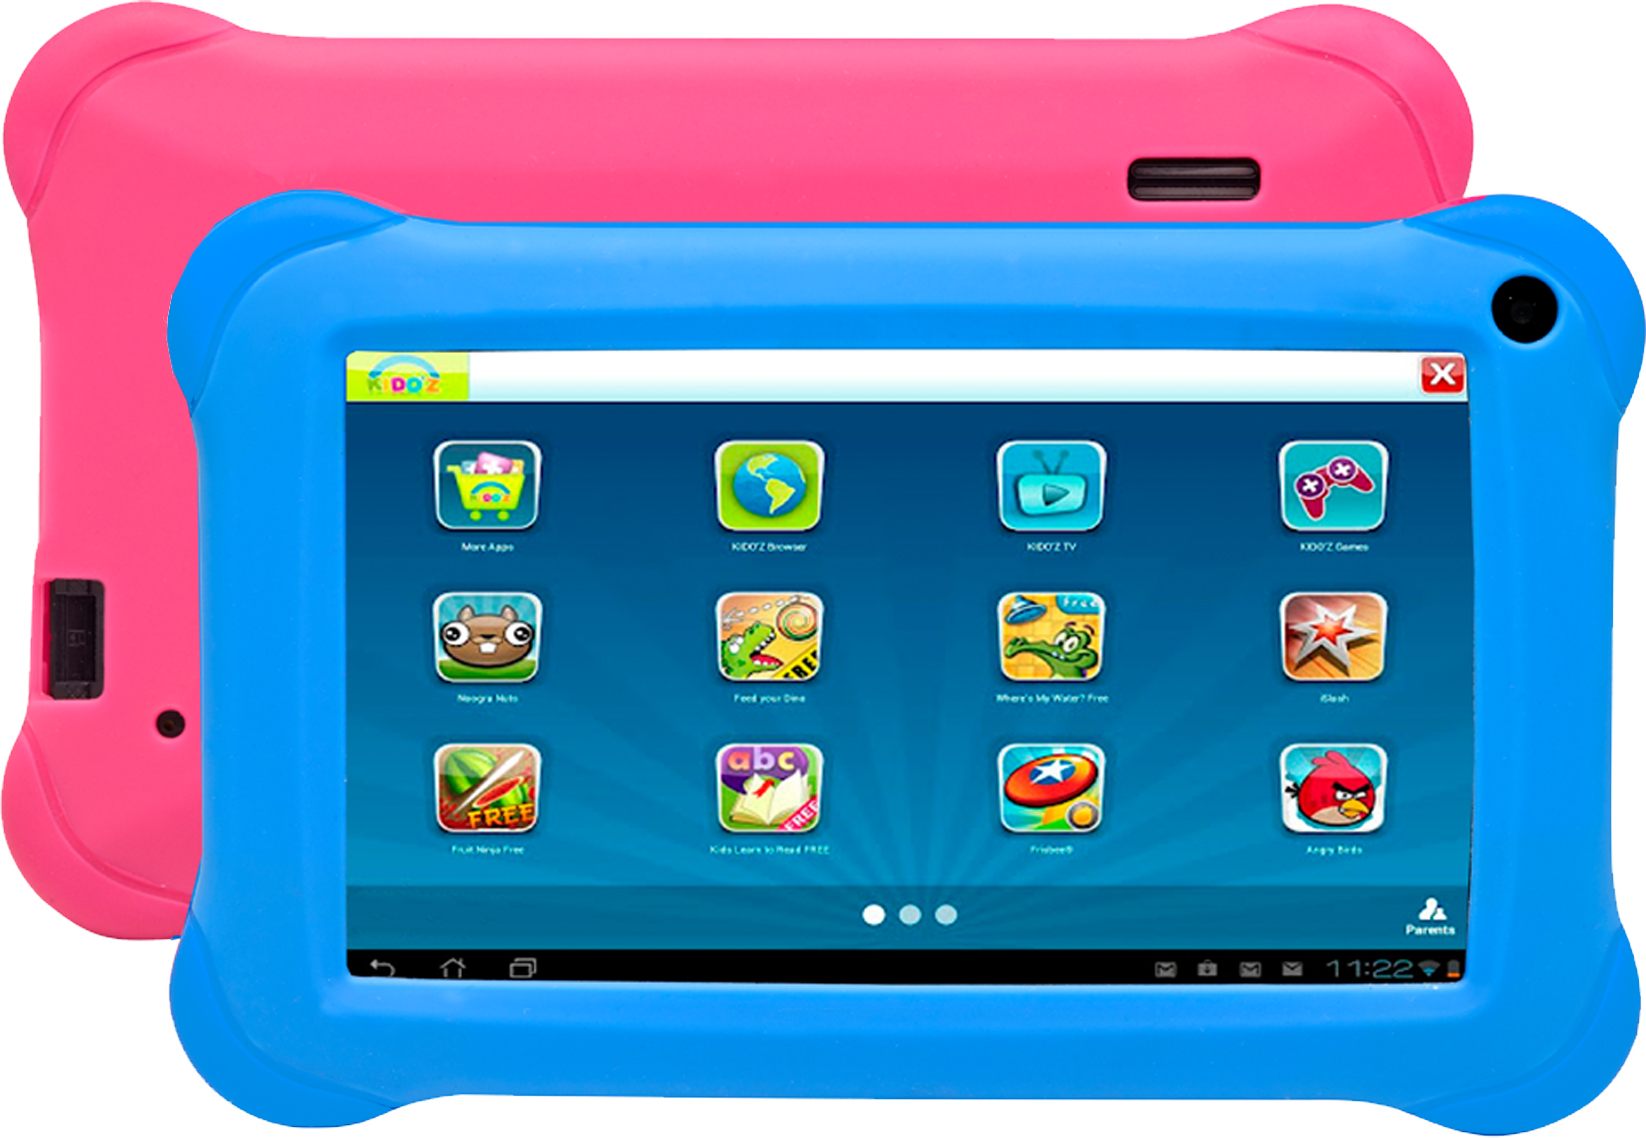 Denver TAQ-70354K 7/16GB/1GB/WI-FI/ANDROID6/BLUE PINK 5706751041136 Planšetdators